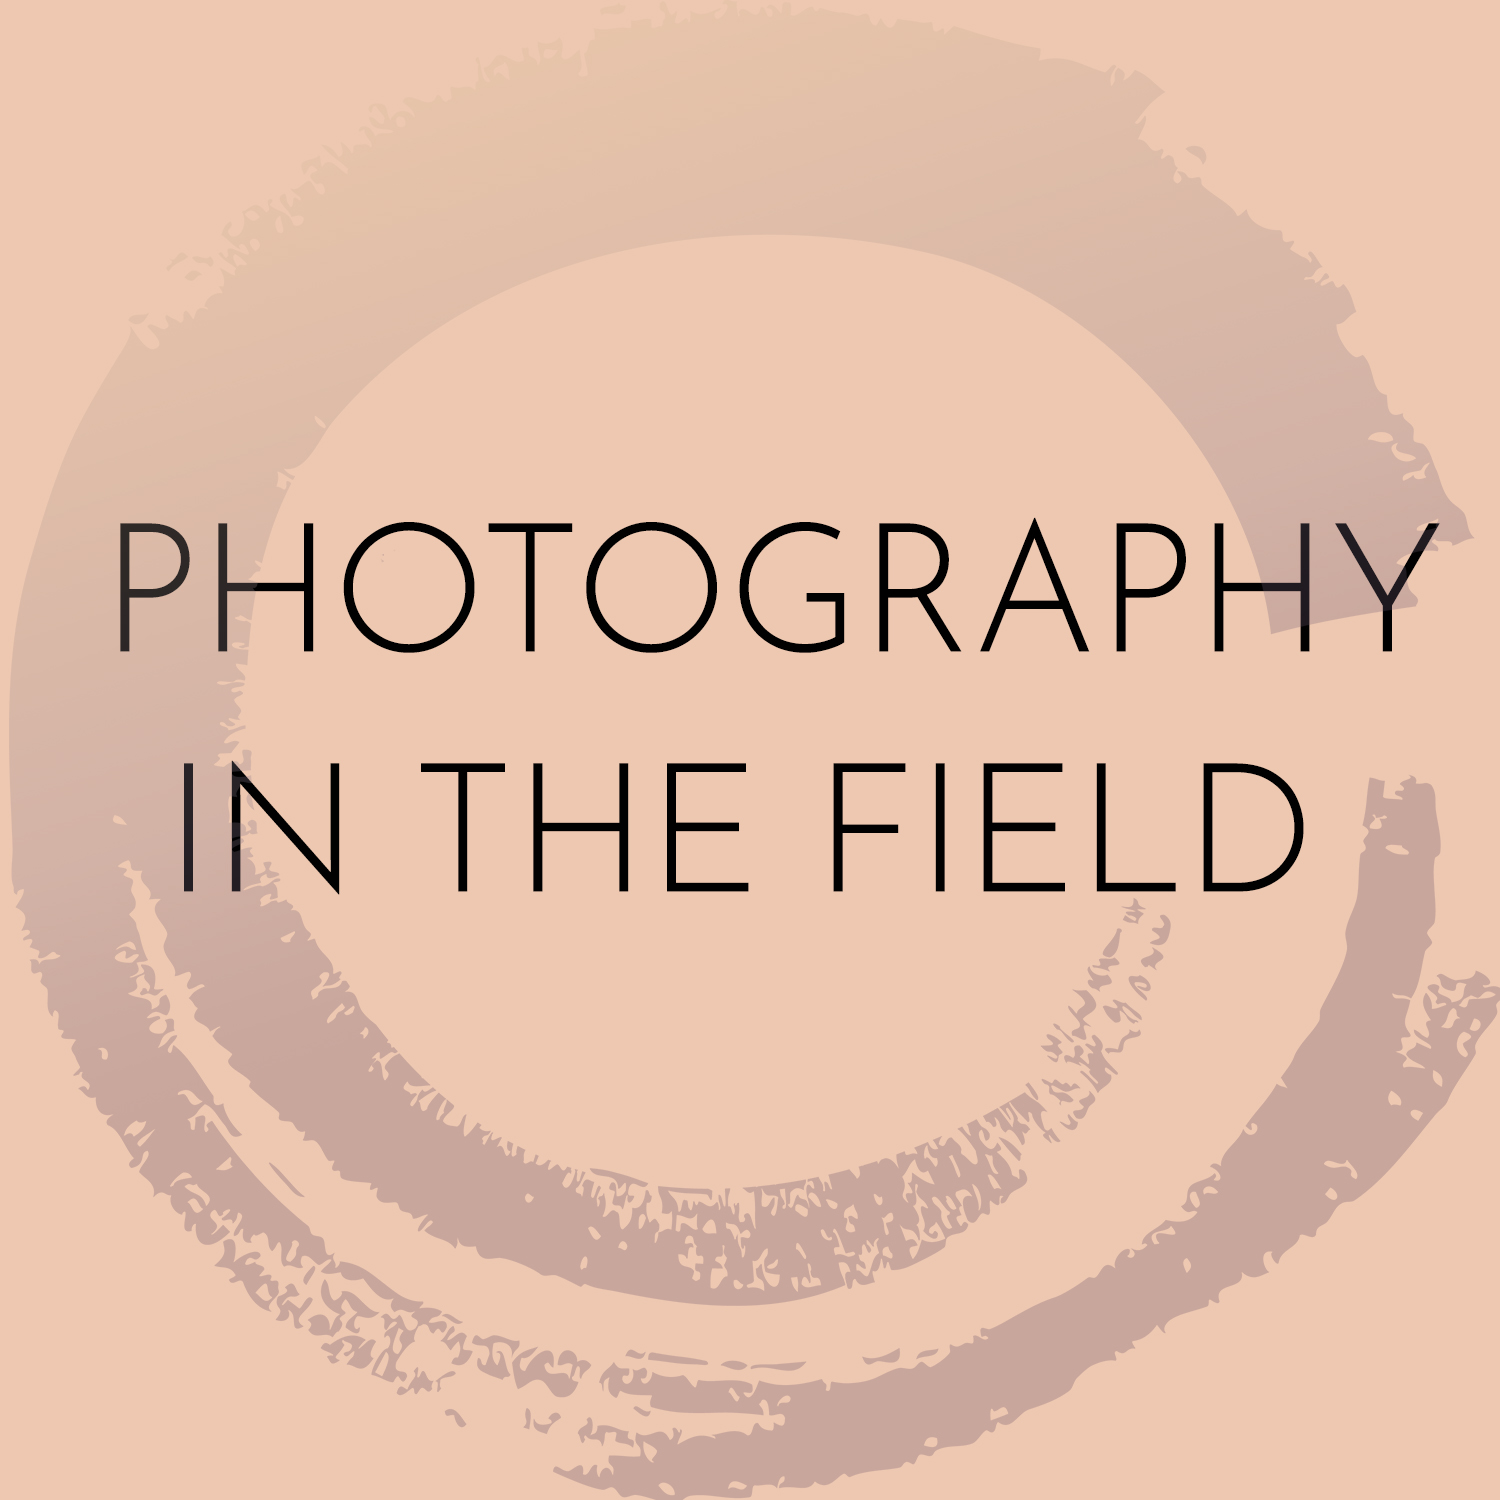 Photography in the field.jpg